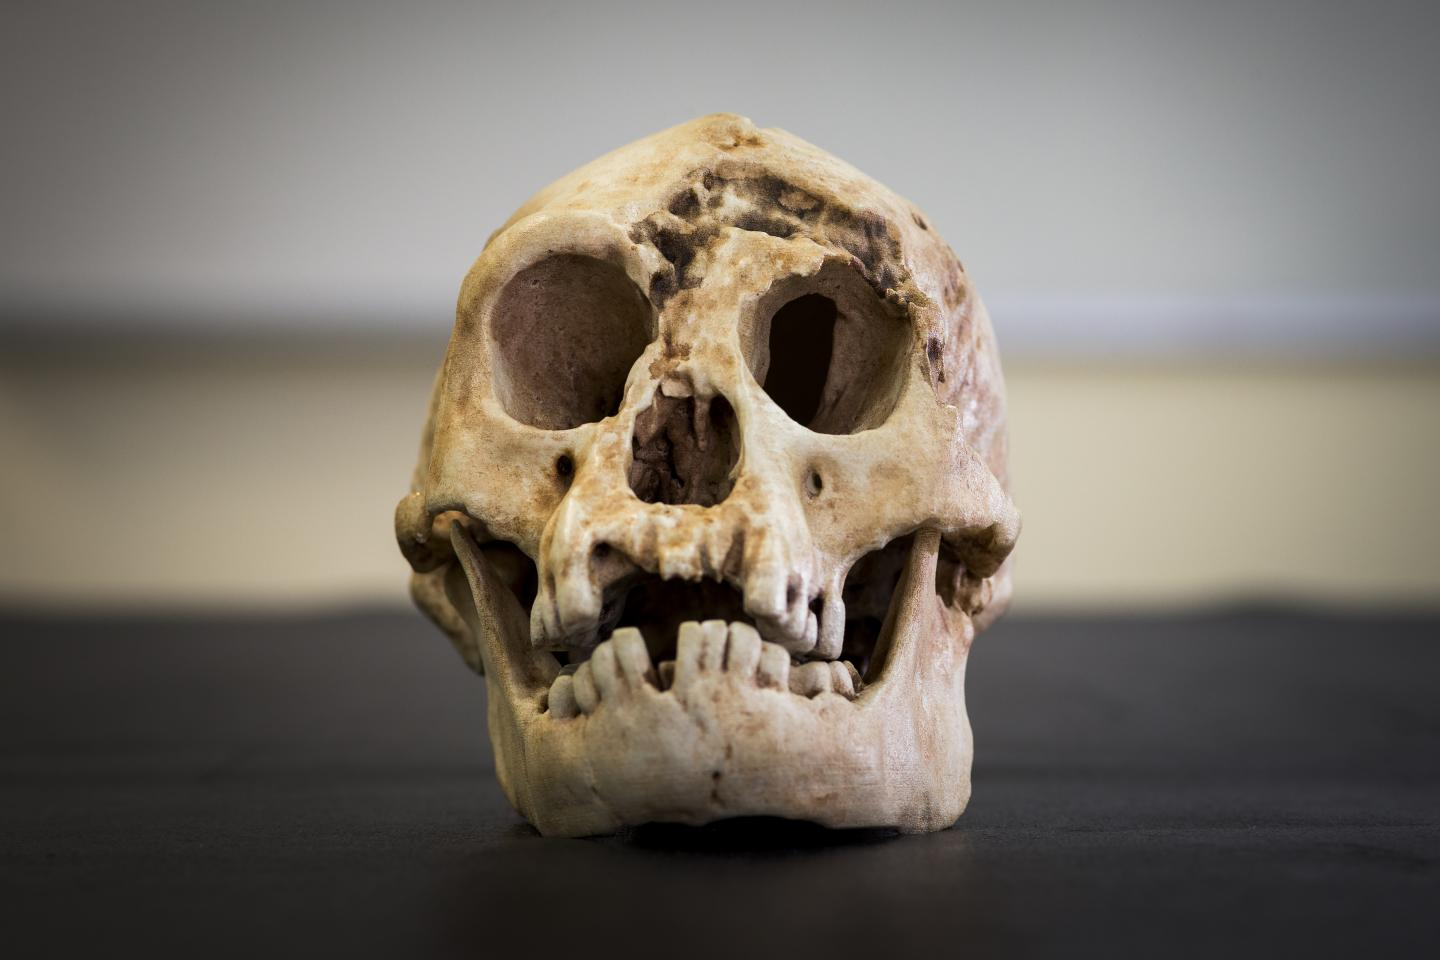 Hobbits of Indonesia Evolved from African Ancestor